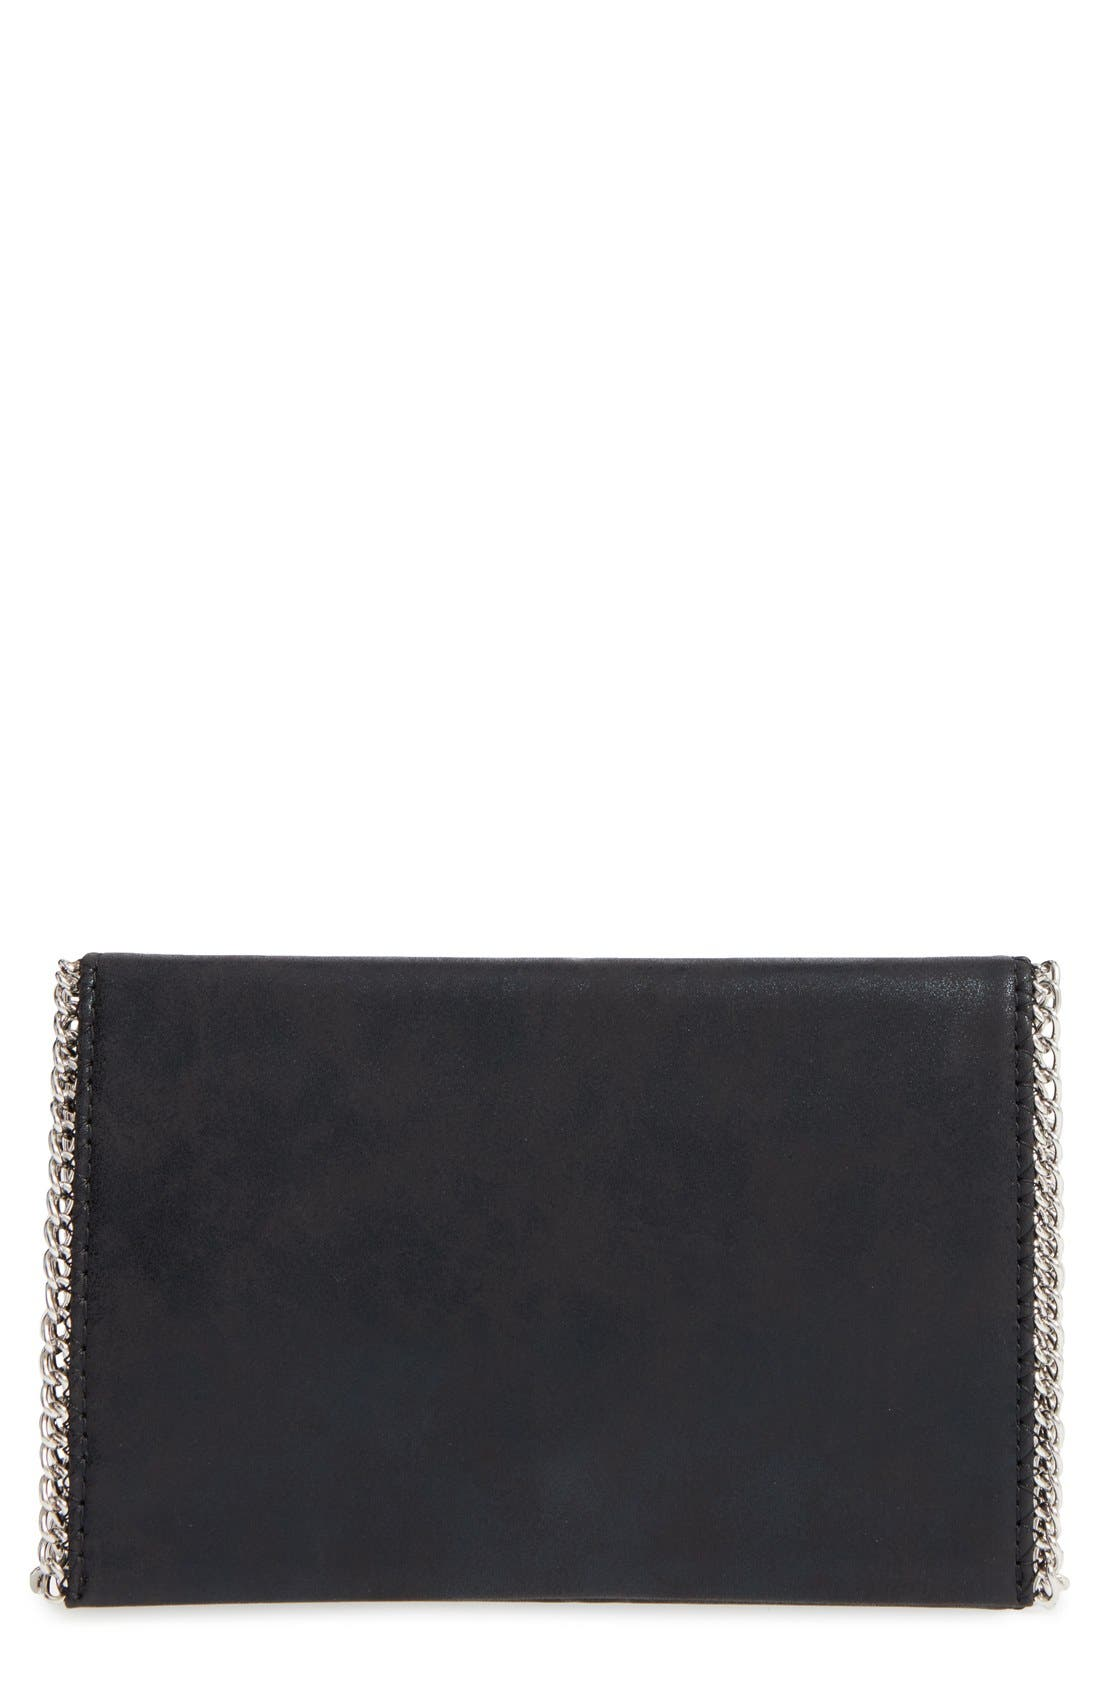 Chelsea28 Faux Leather Clutch